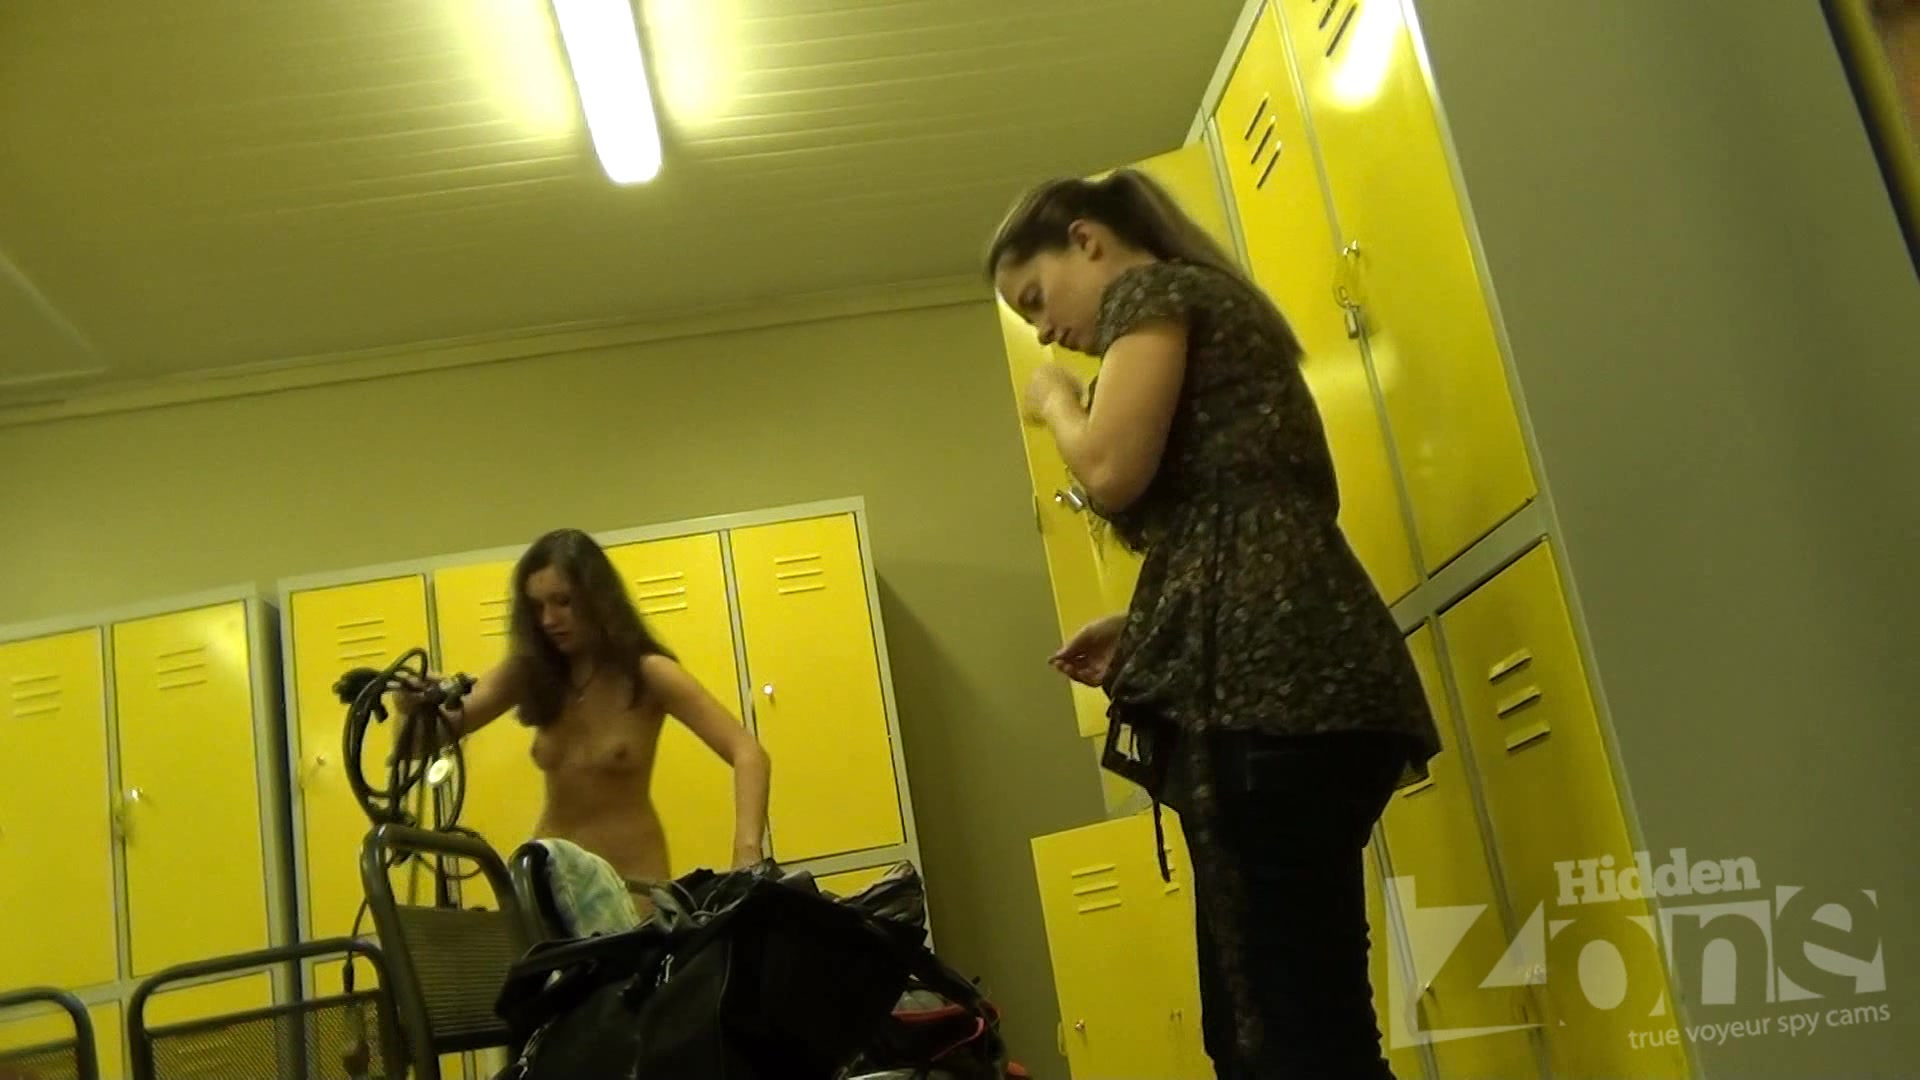 Long-haired babe fold her clothes in the locker Mature lady sonia masturbates